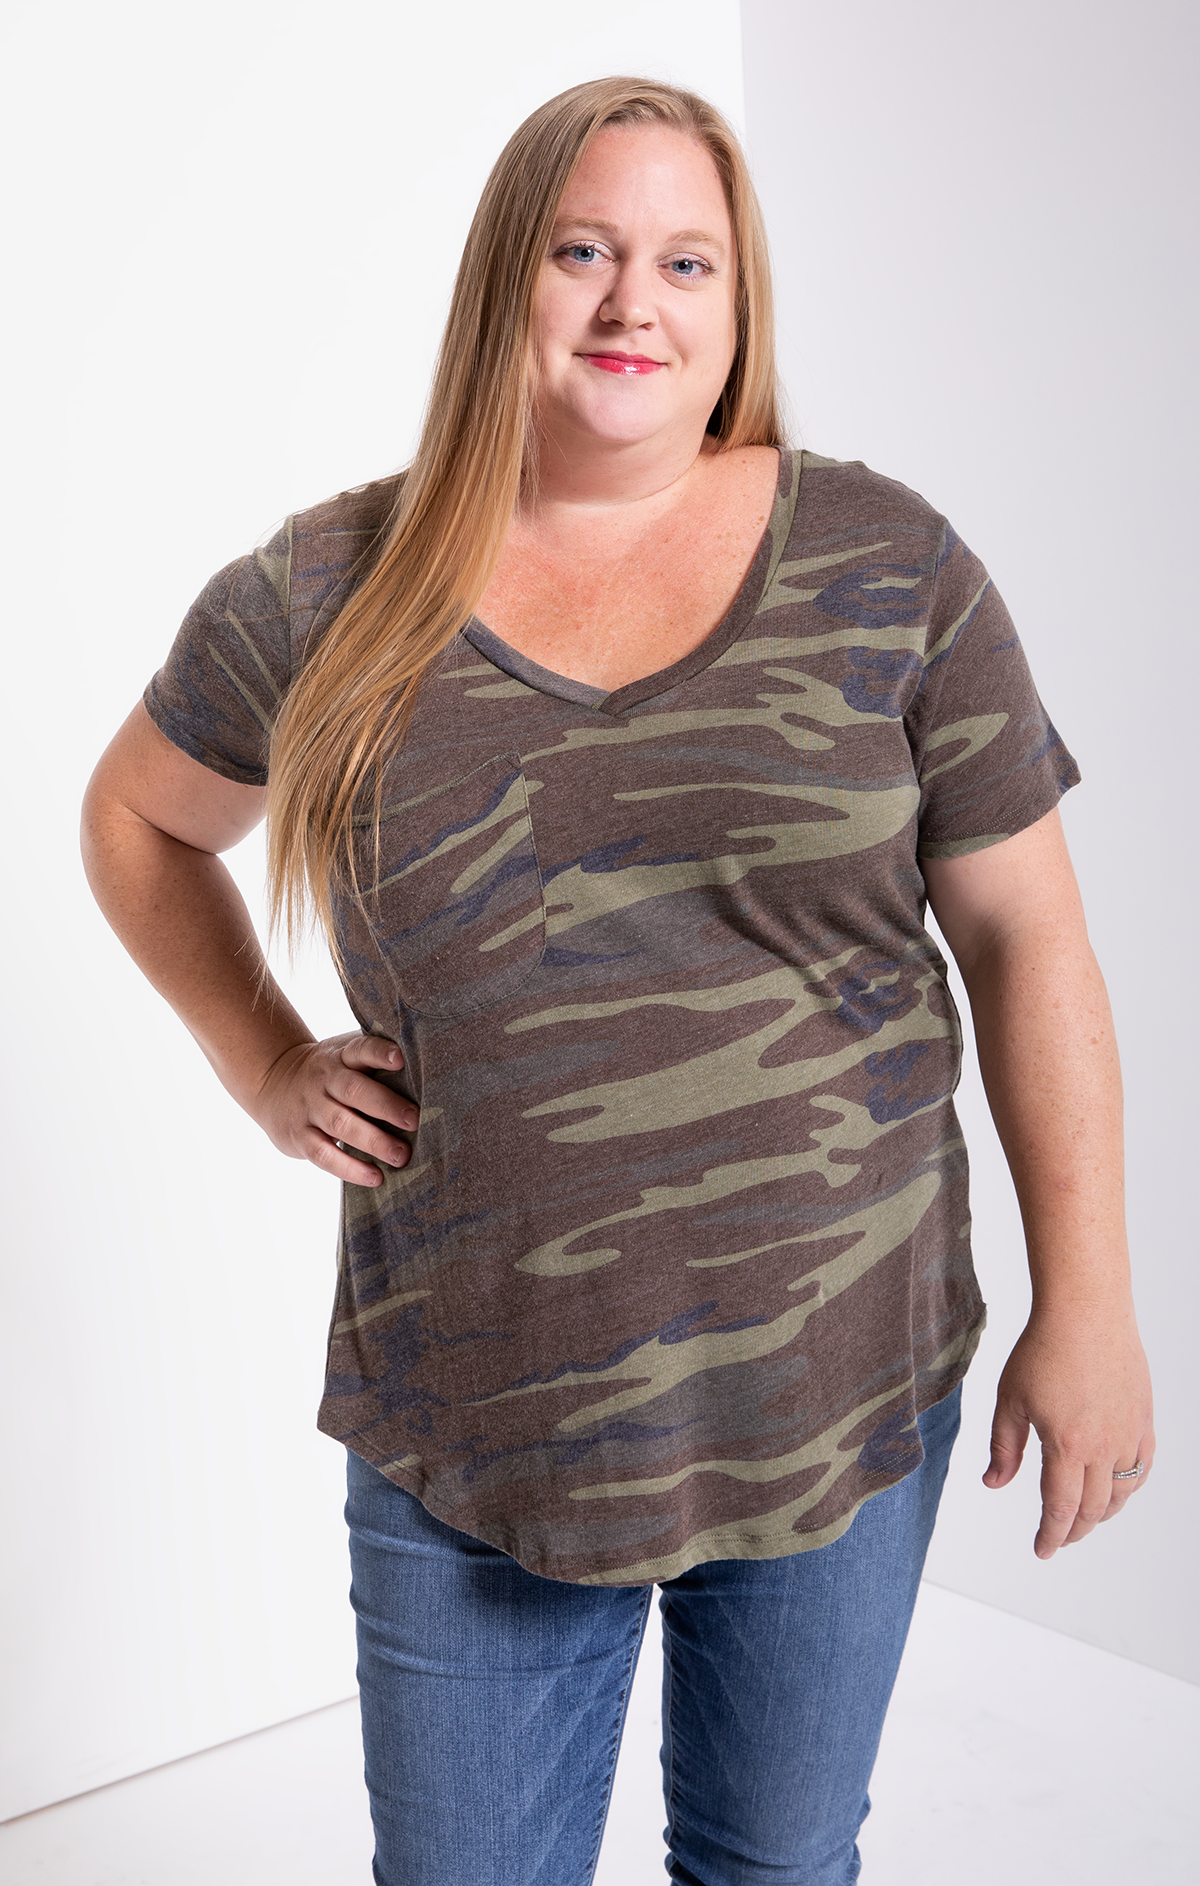 Vanessa wearing The Camo Pocket Tee in camo green, size extra-large